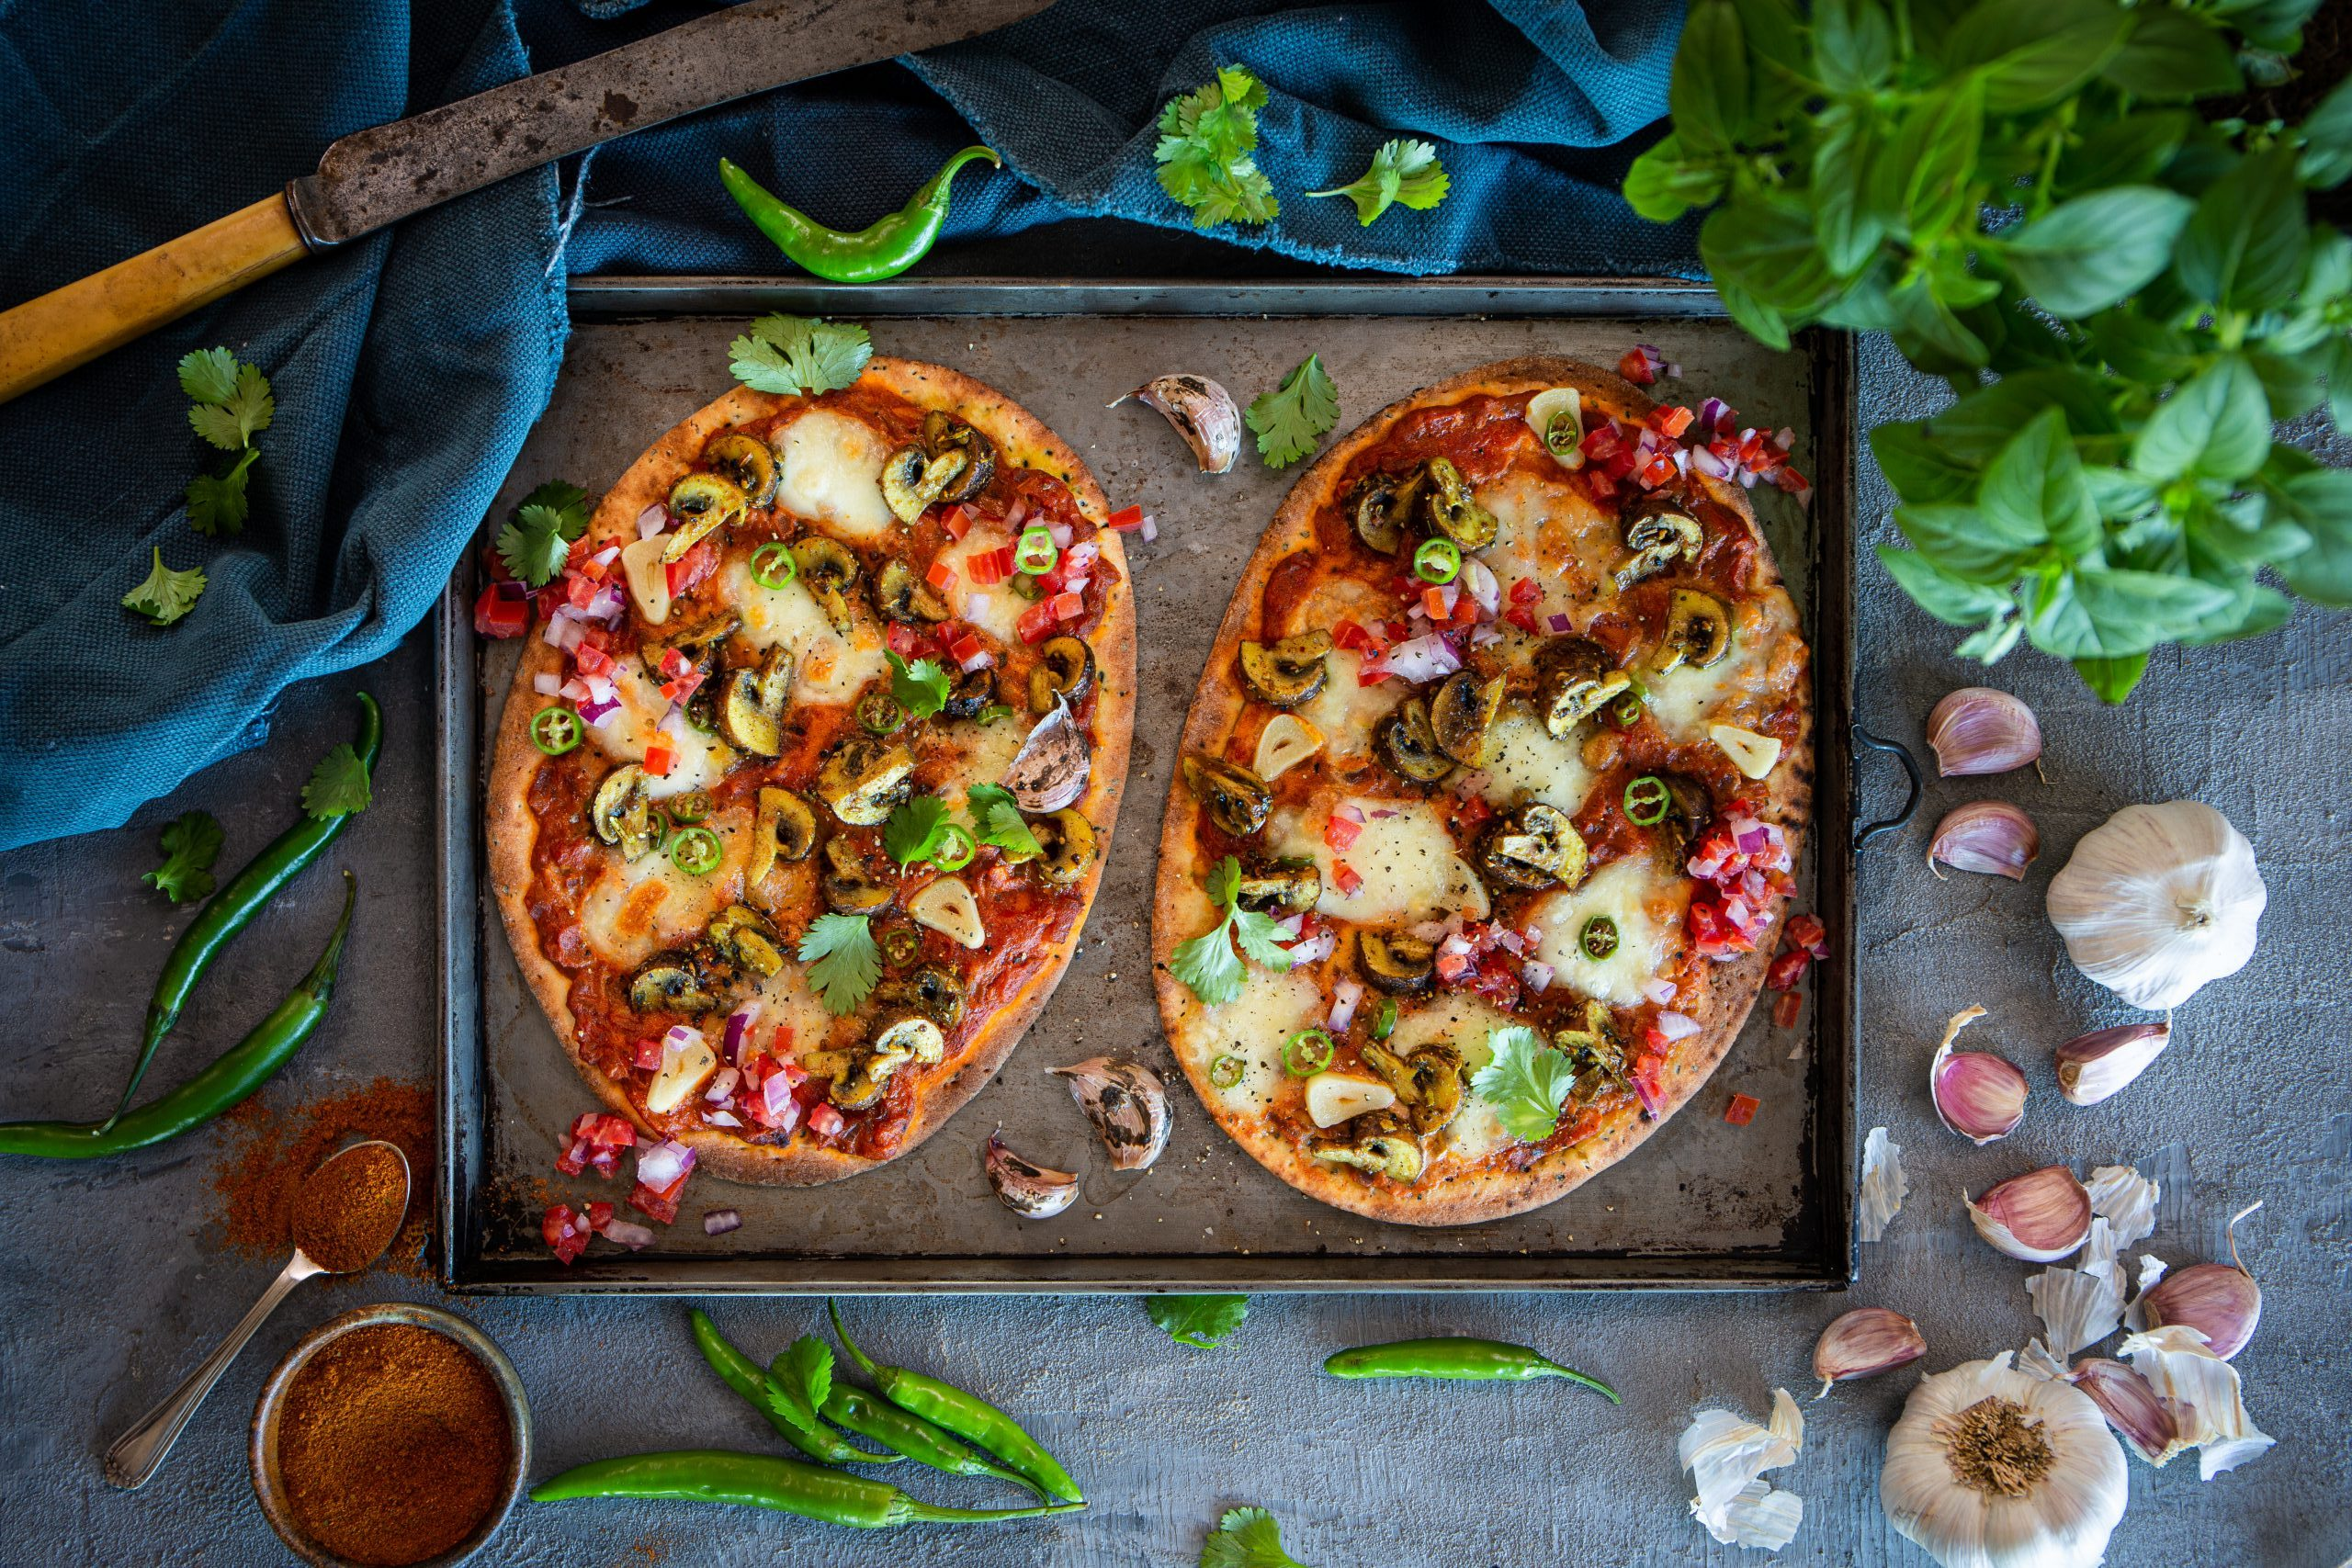 FOOD: Curried Mushroom Naan Pizza With Roasted Garlic & Chilli